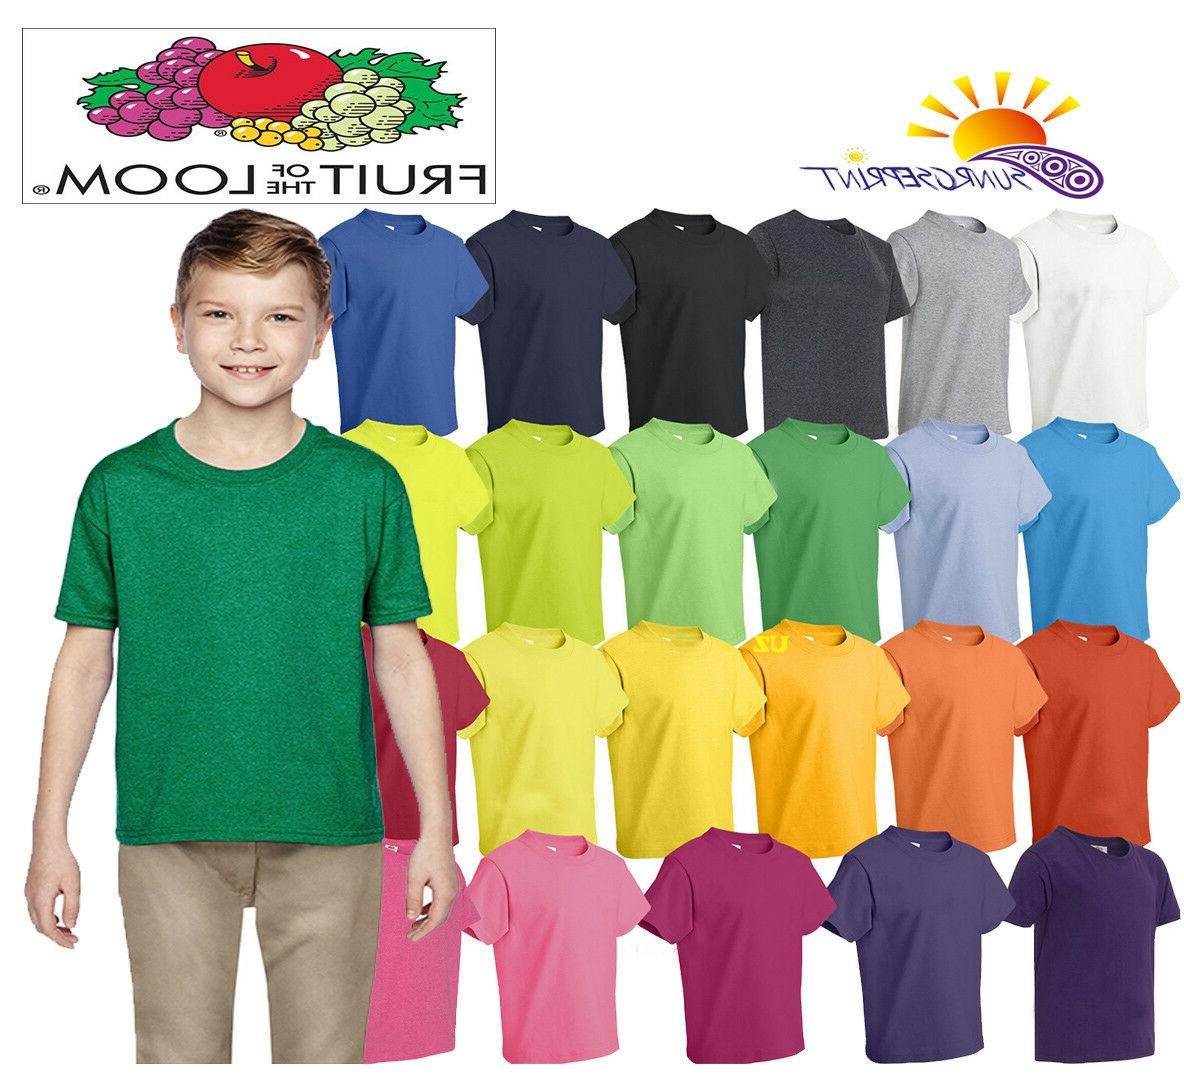 hd cotton youth short sleeve t shirt